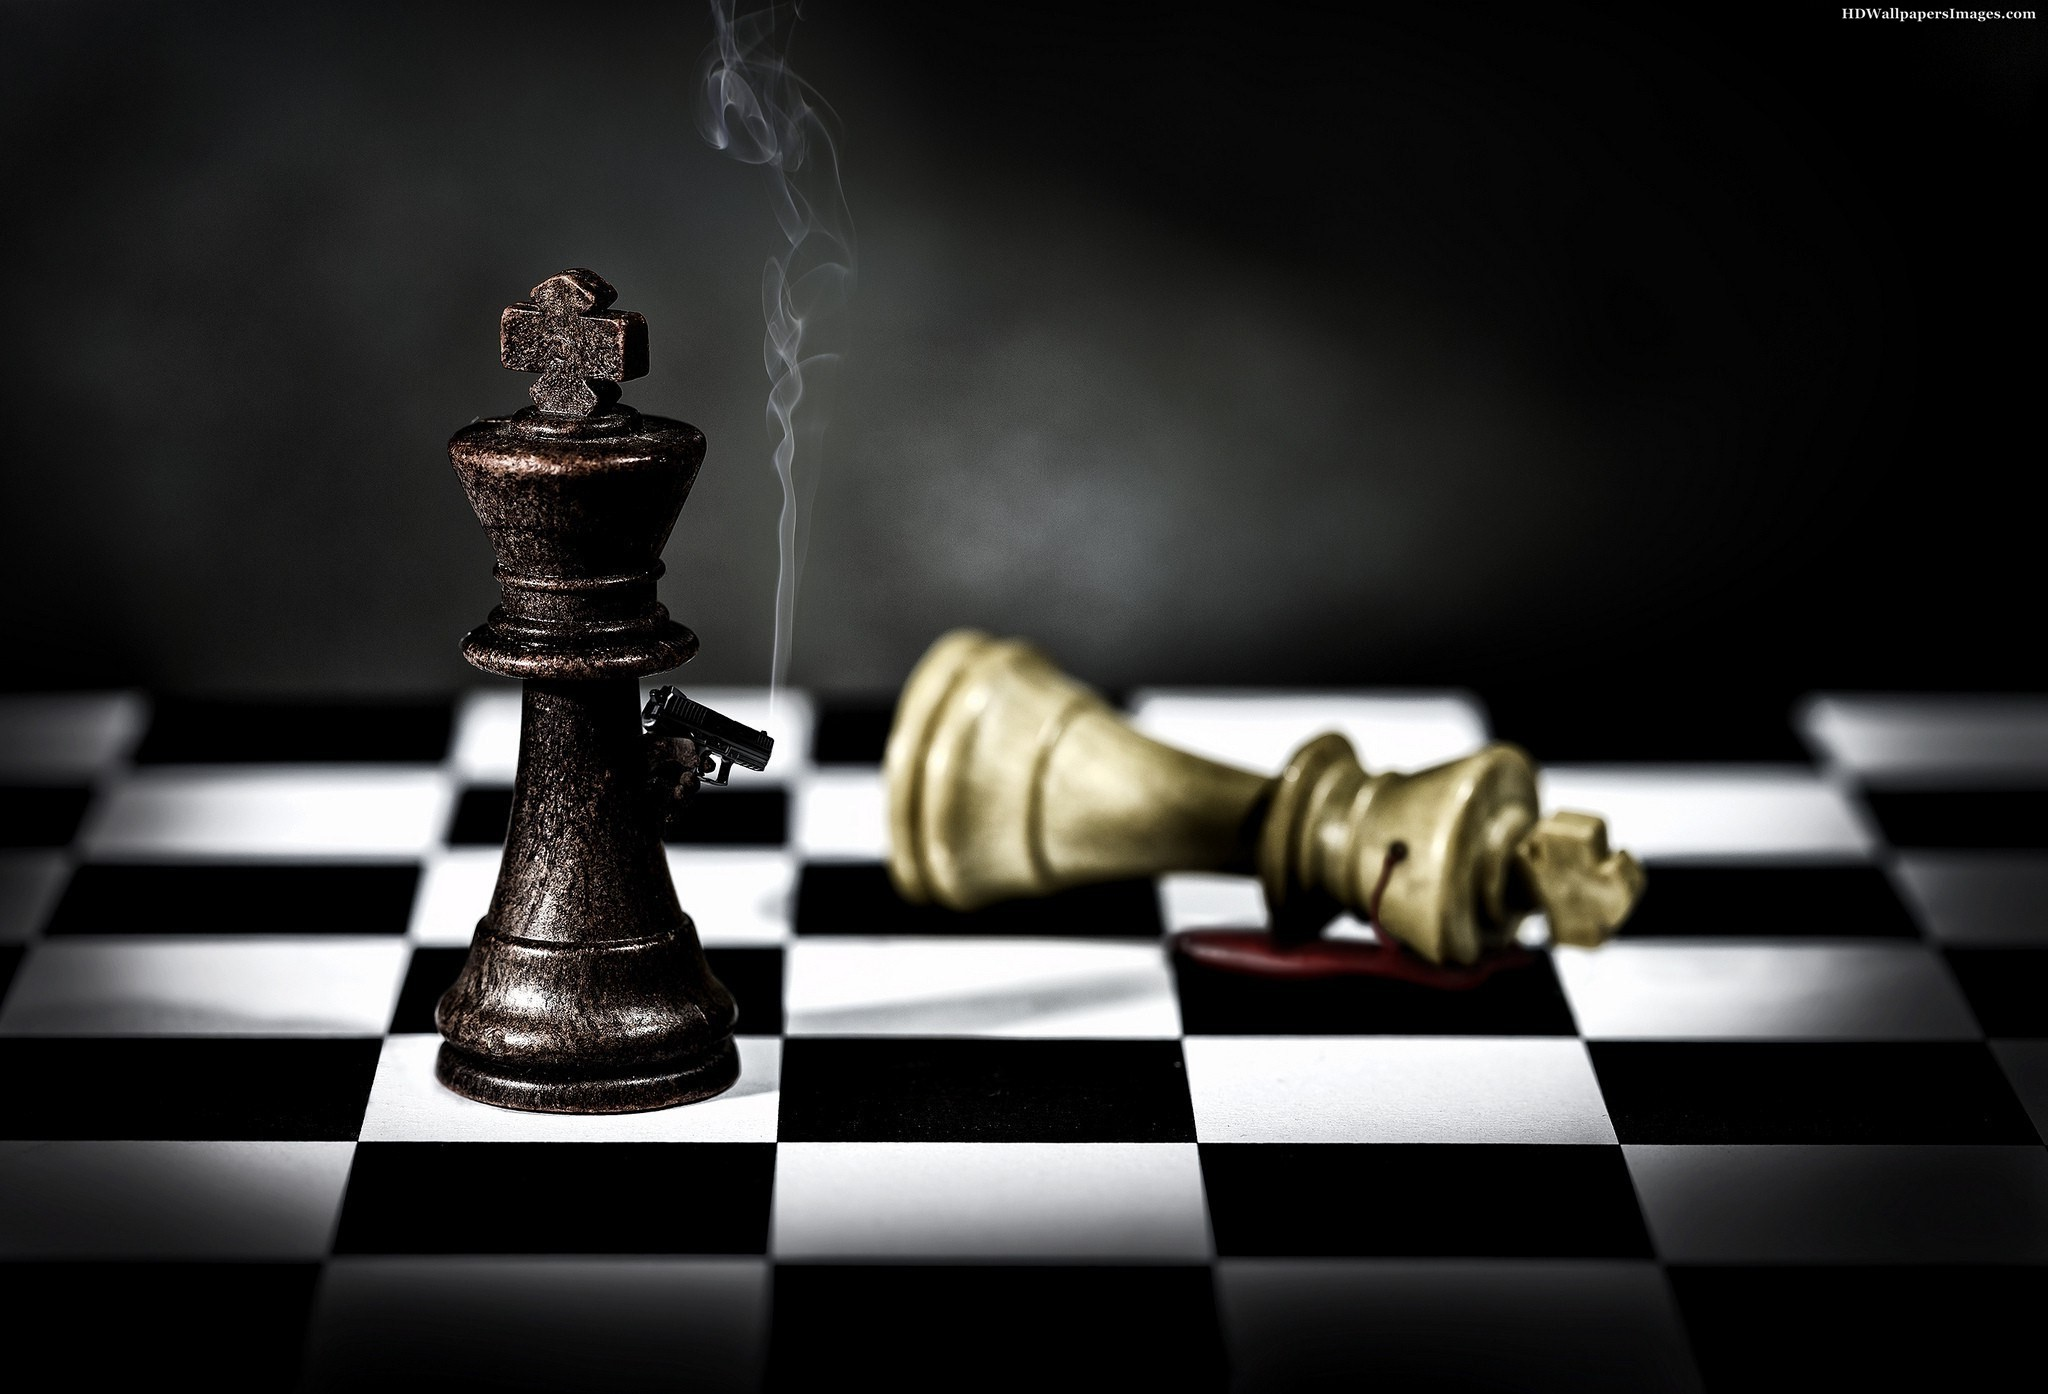 funny-chess-king-images.jpg